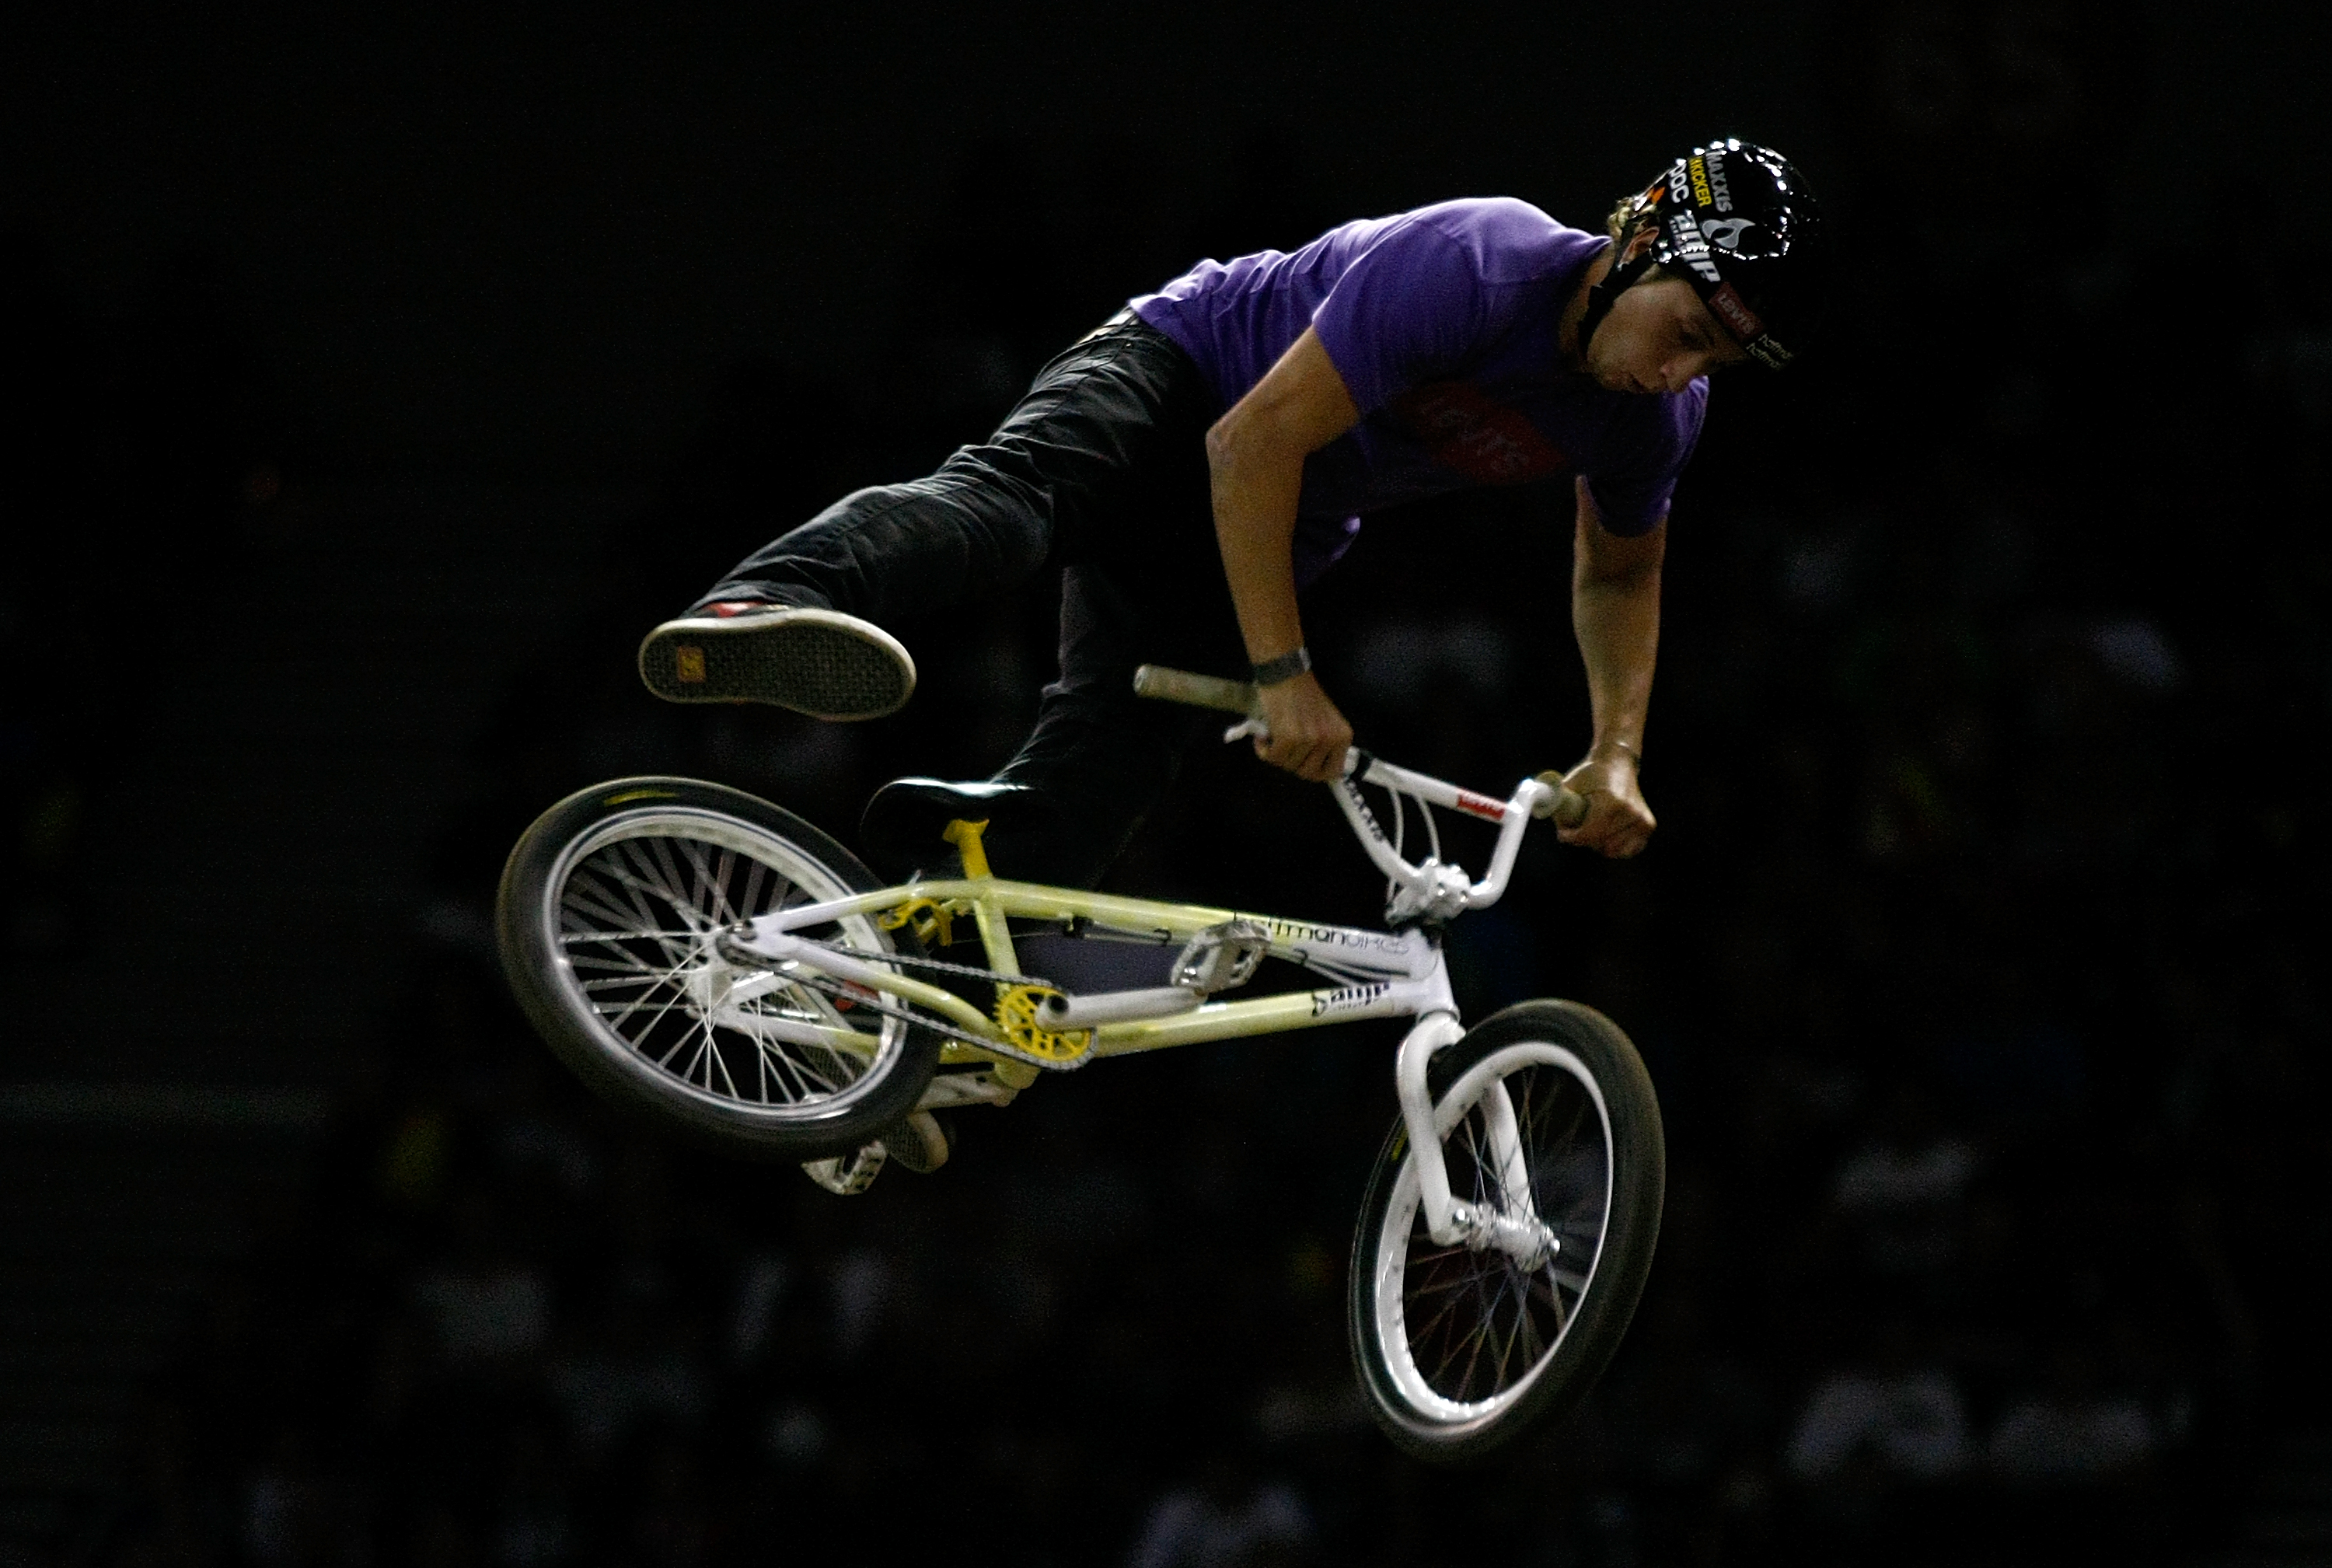 X Games 16: The 25 Biggest Stars in Summer X Games History